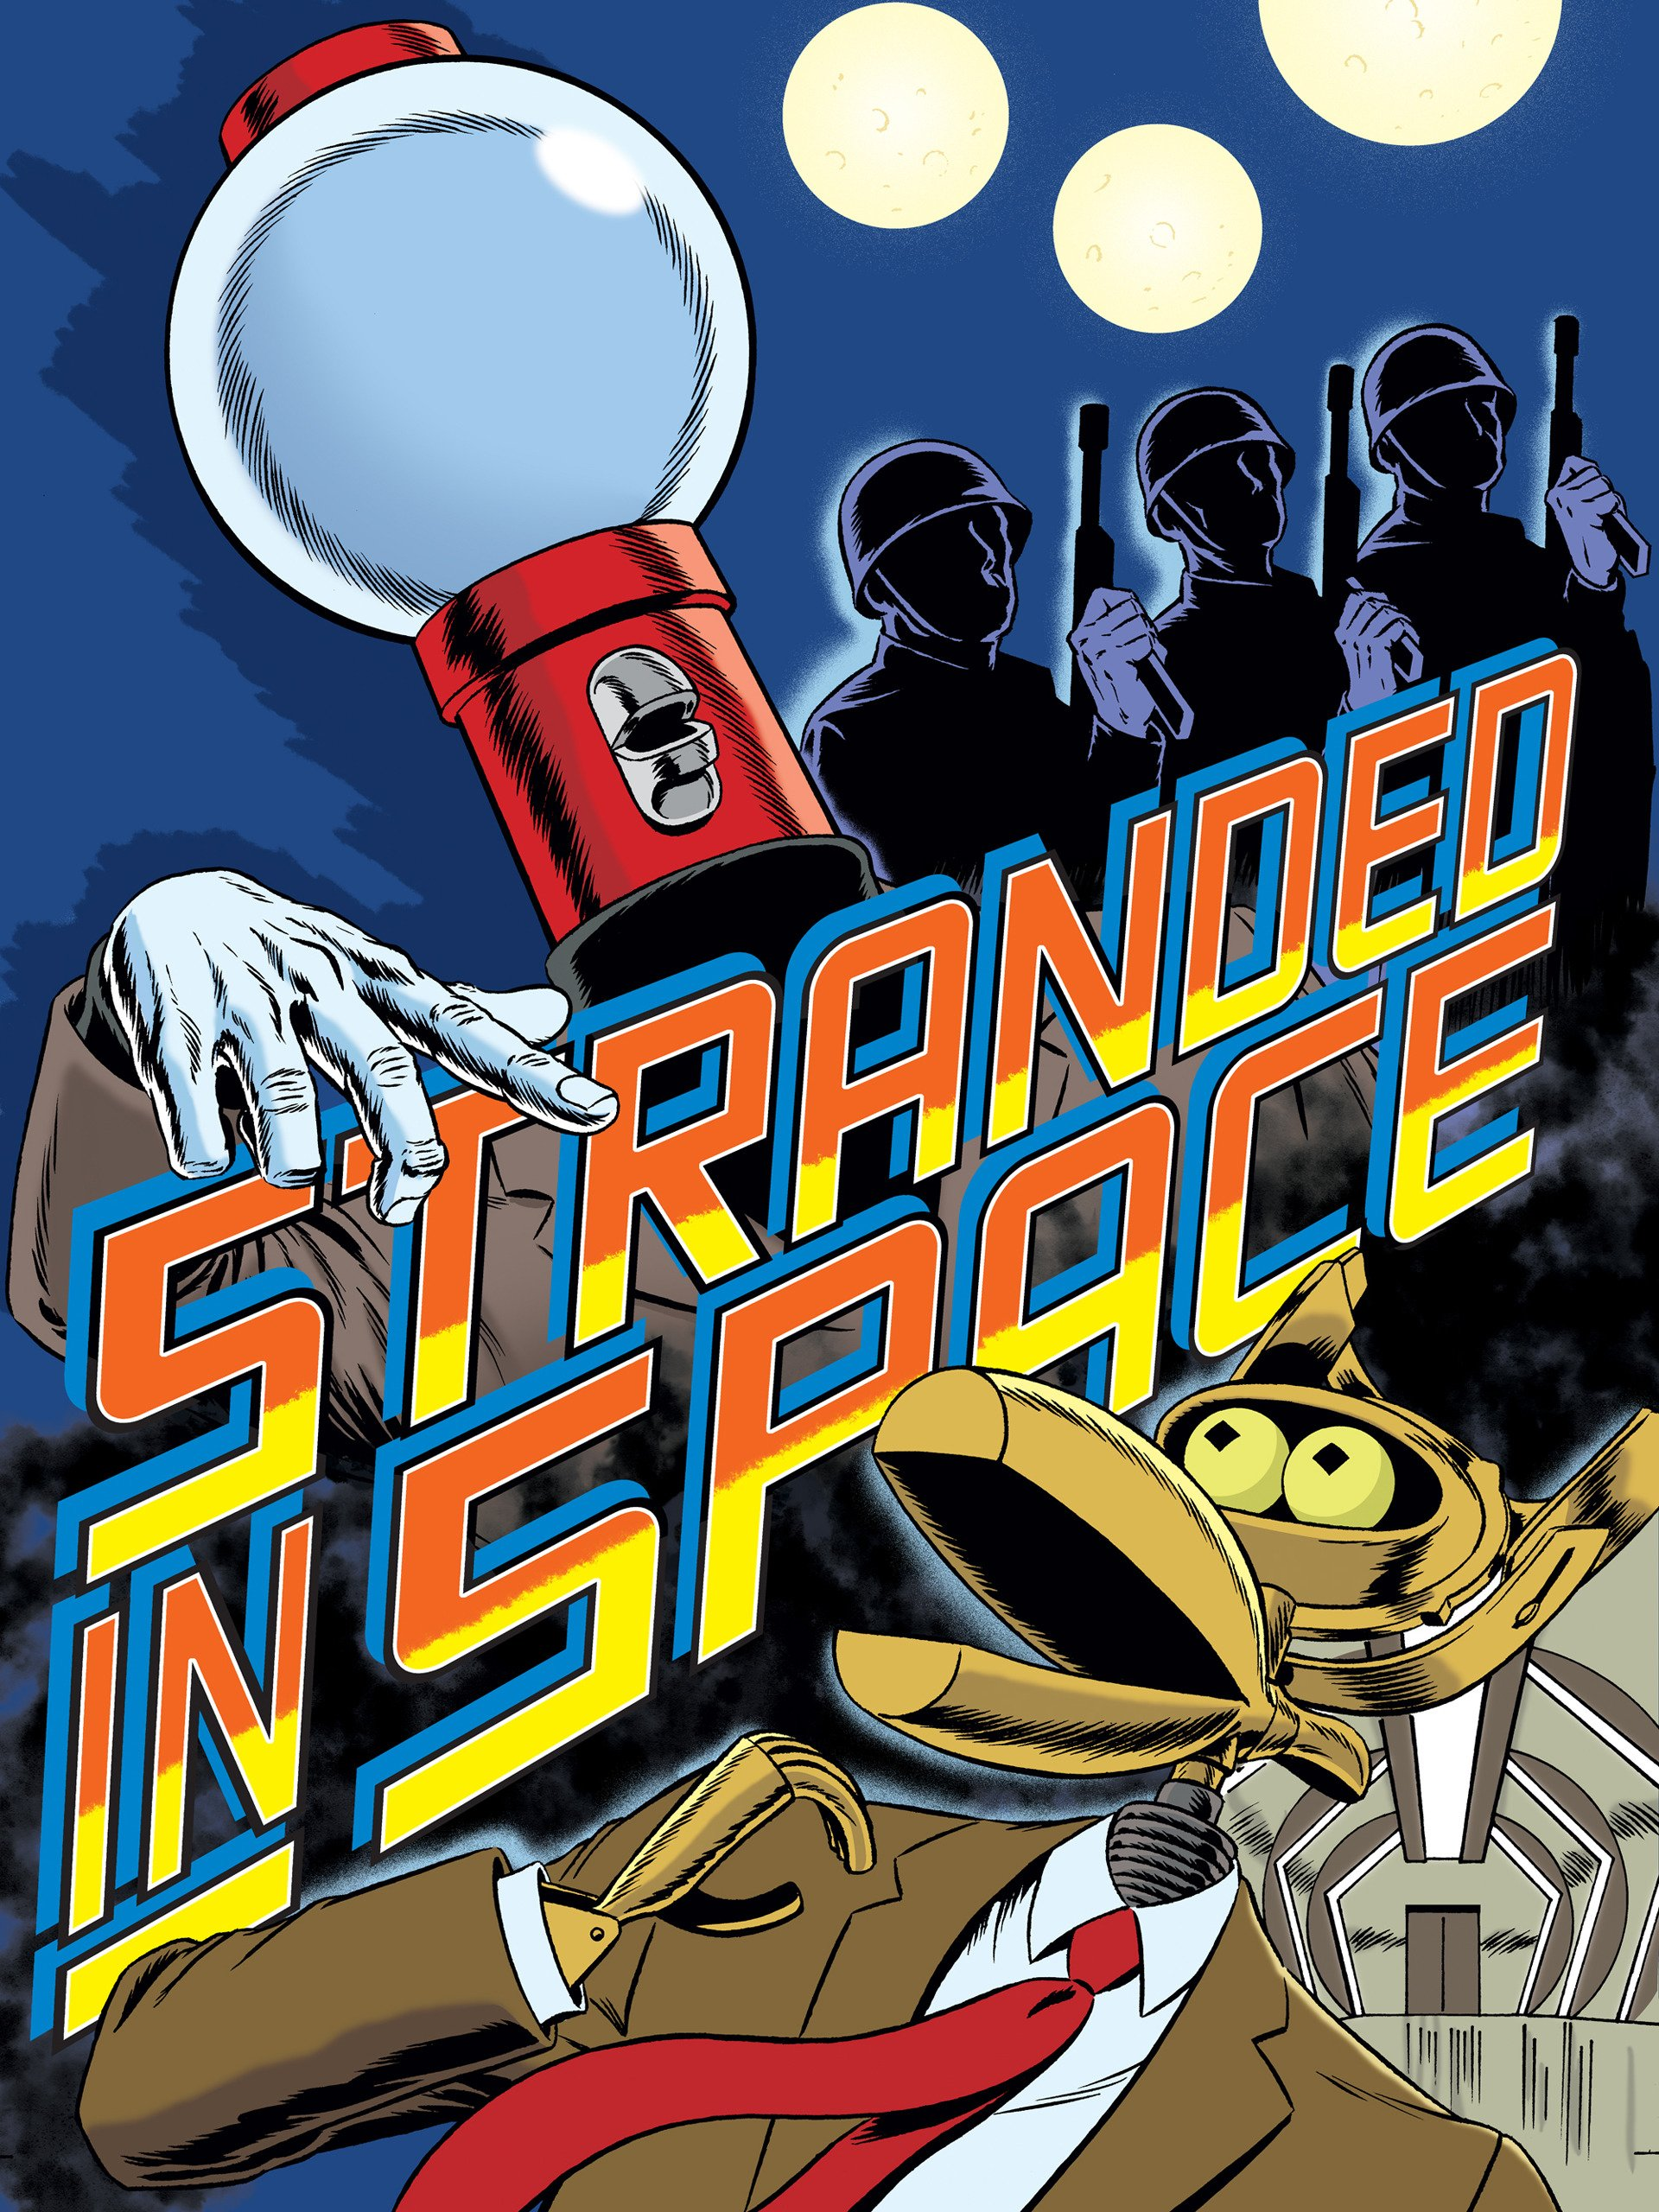 Mystery Science Theater 3000 - Stranded in Space